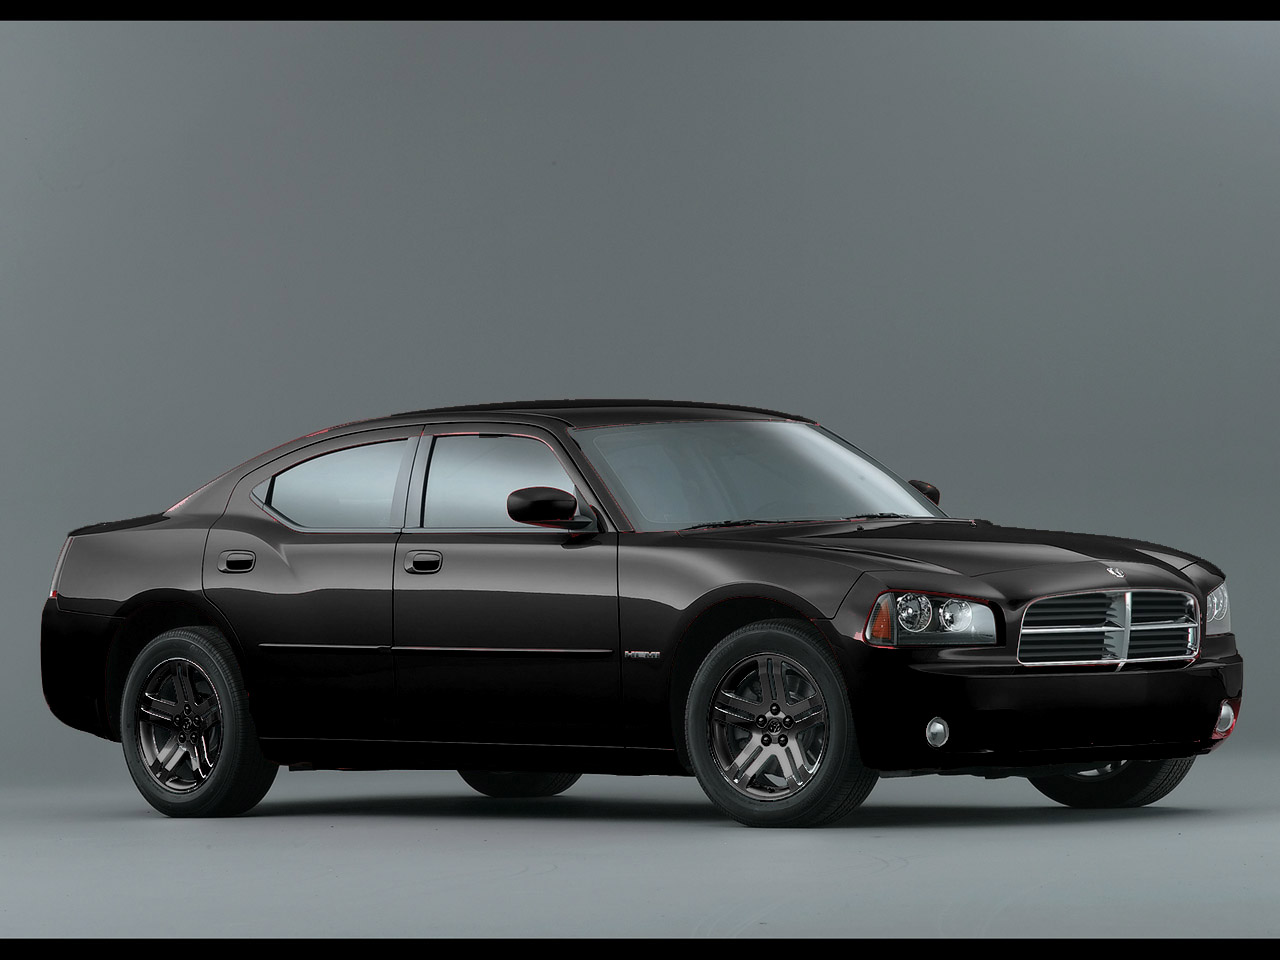 2006 Dodge Charger #5